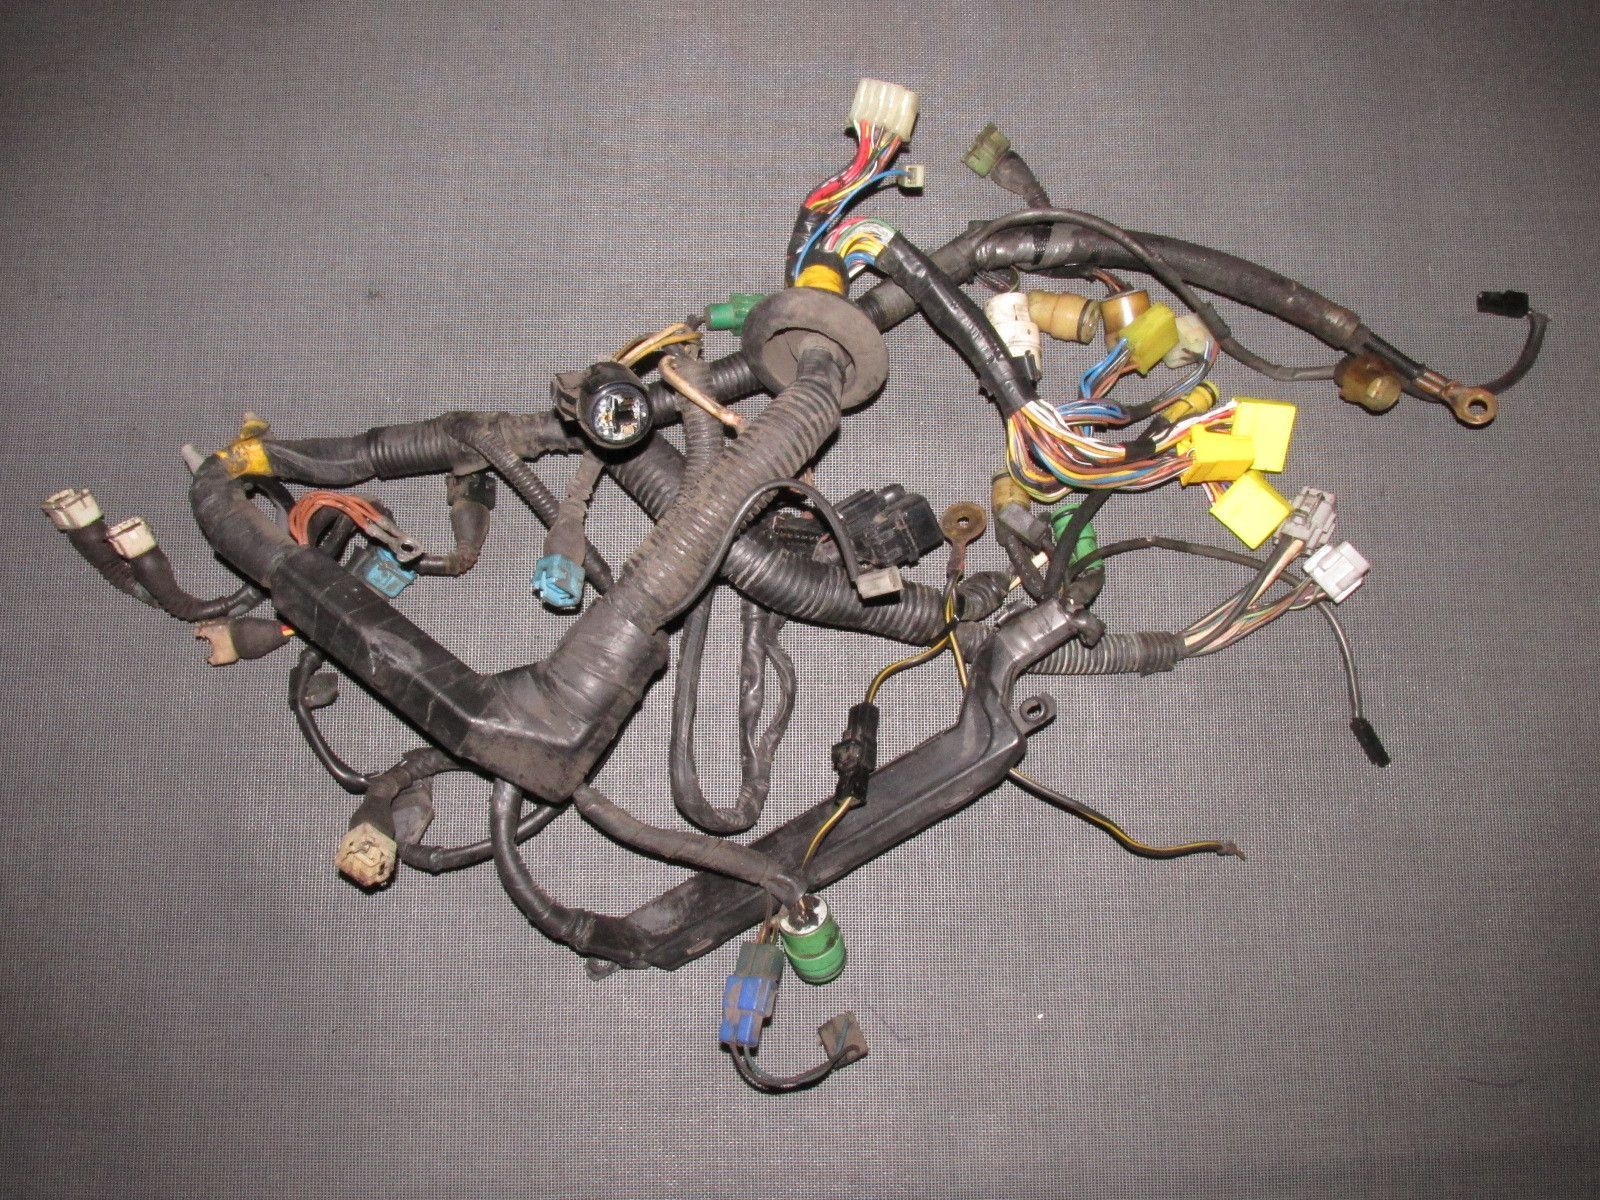 hight resolution of 85 86 87 88 89 toyota mr2 oem 4age engine wiring harness cars wiring harness components